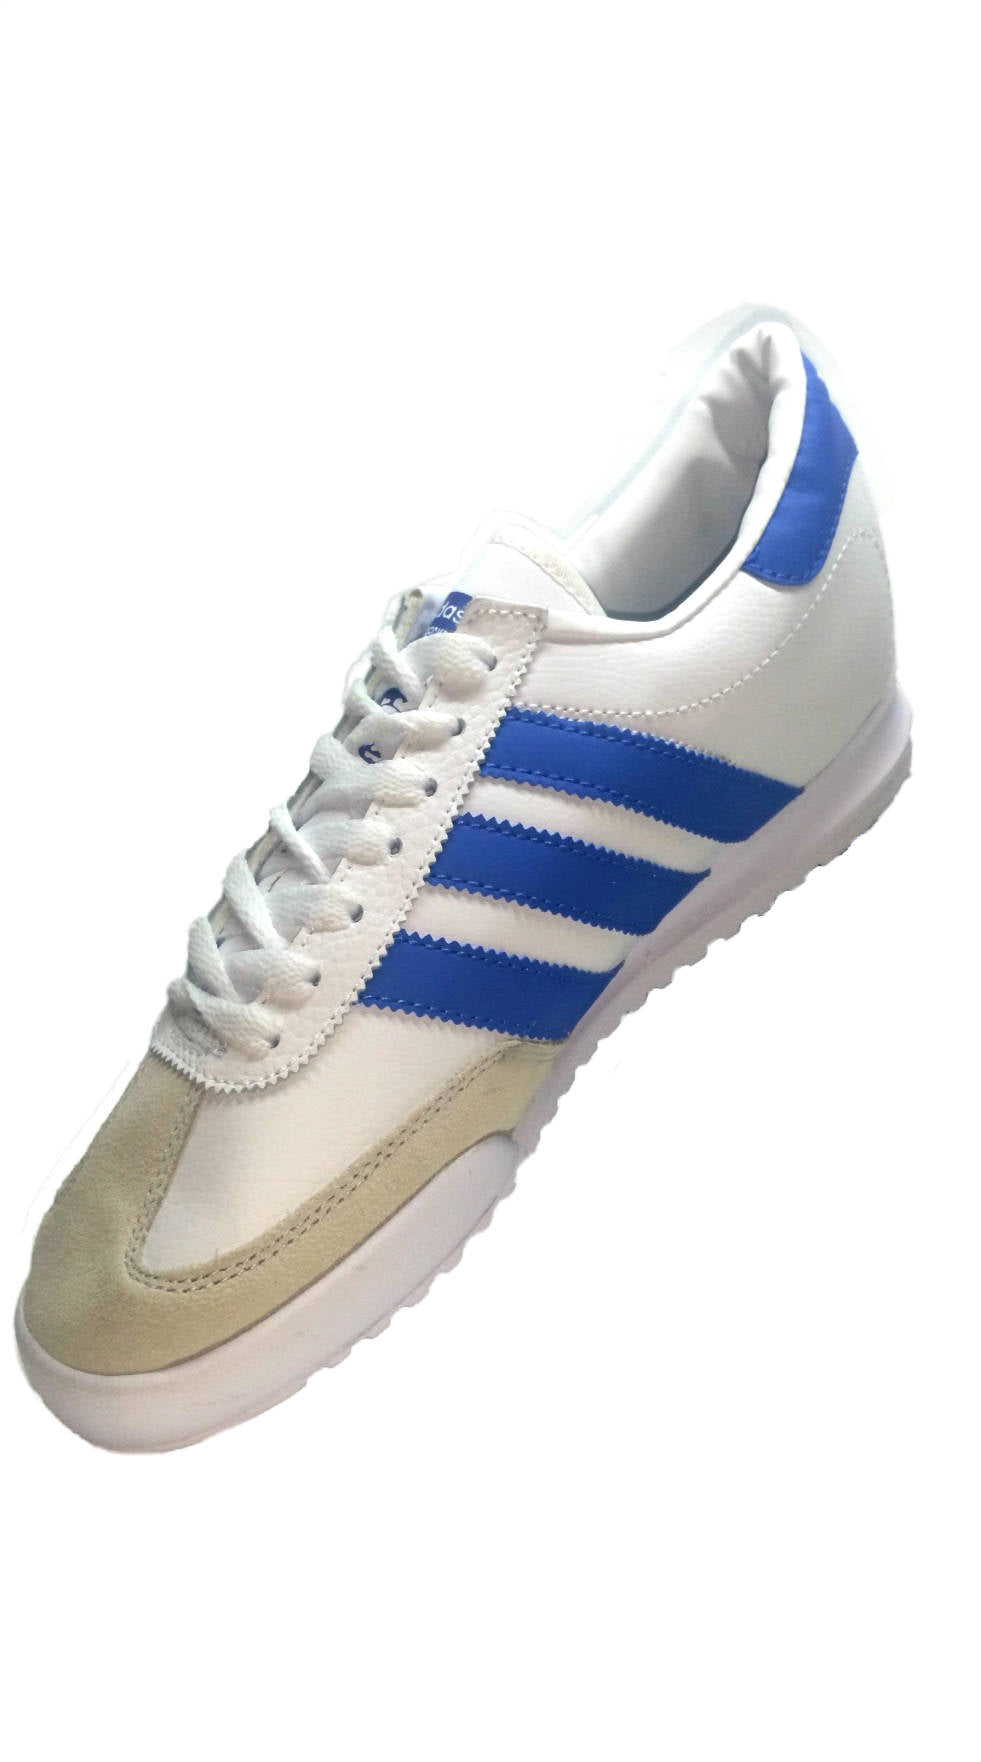 Adidas Beckenbauer White/Blue Stripes